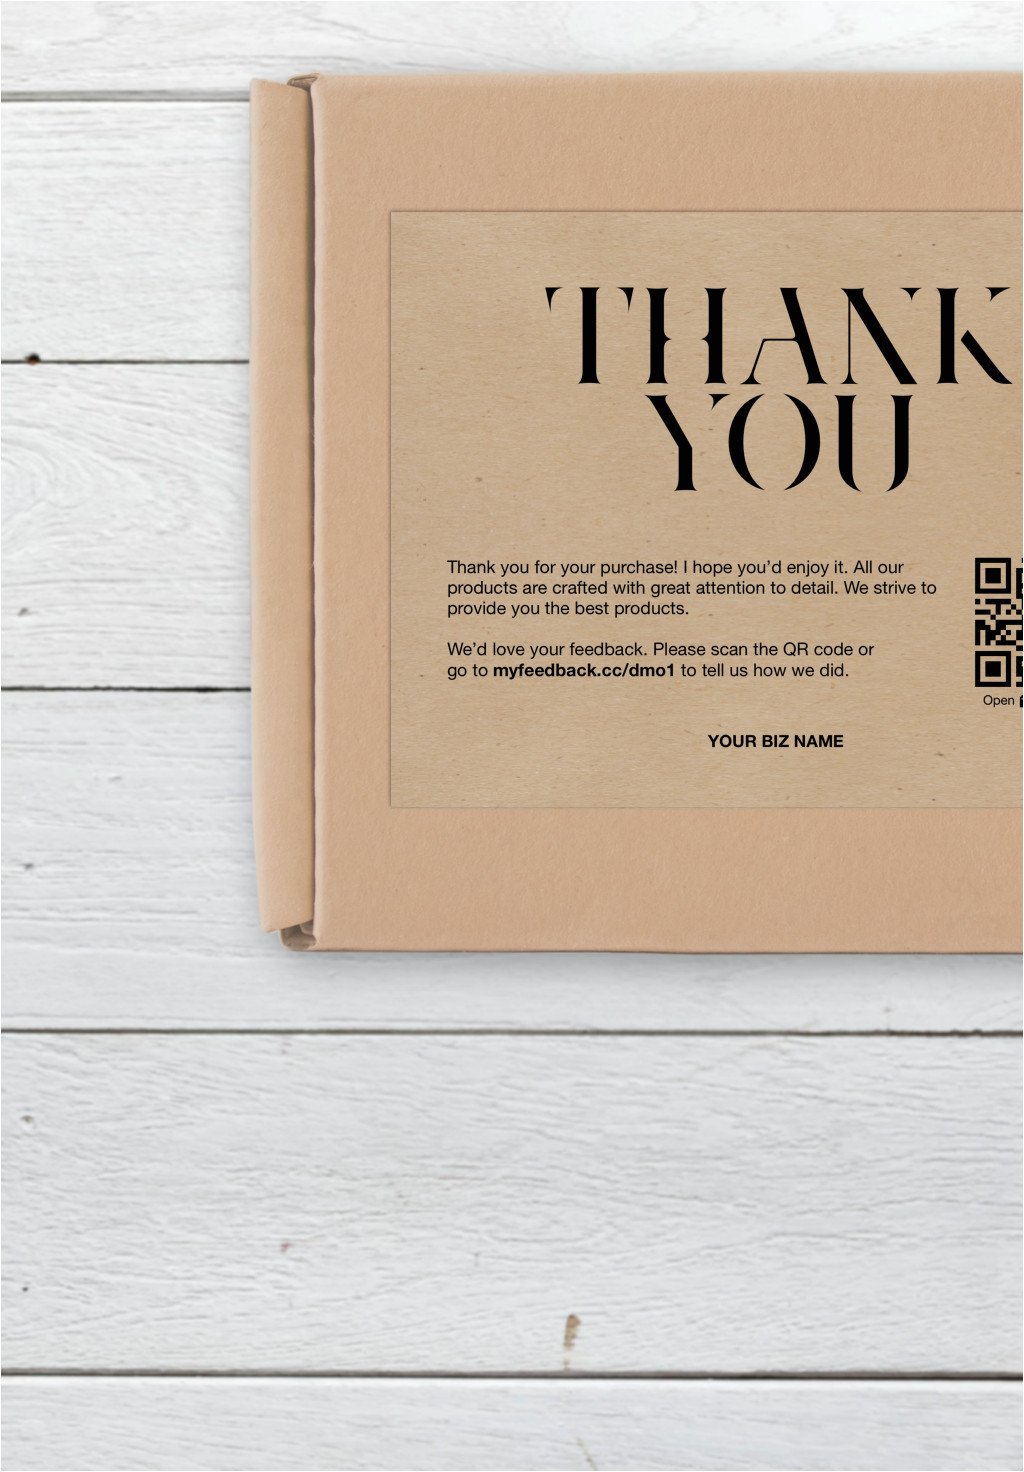 Thank You for Shopping with Us Card Business Thank You Card Thank You for Your Purchase